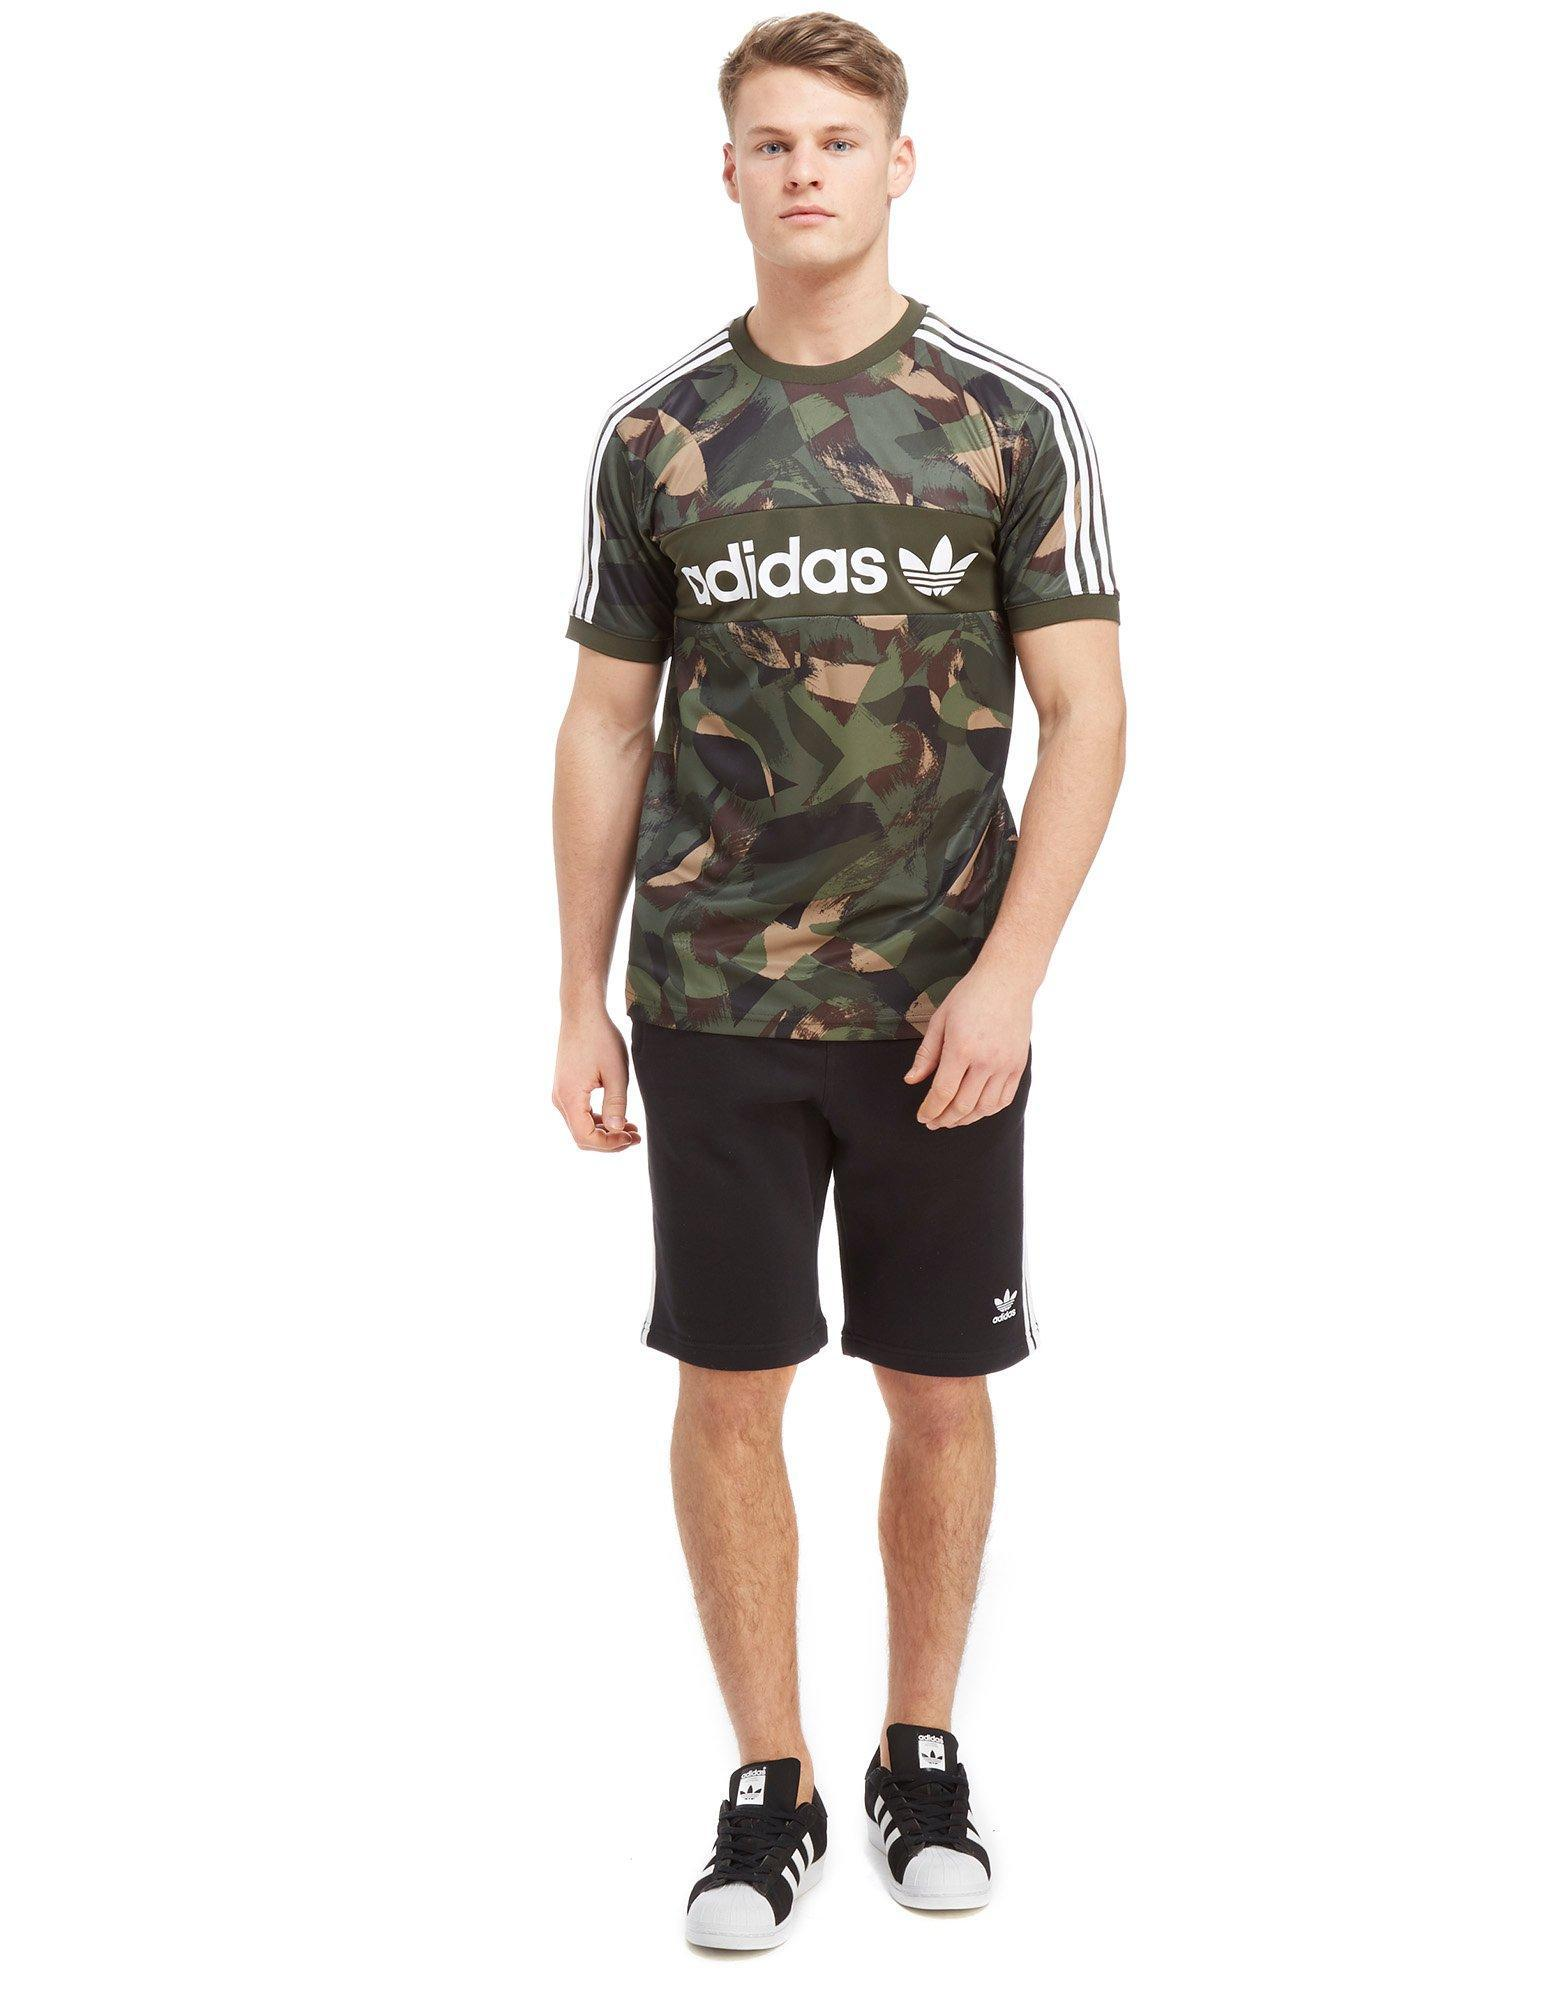 In Originals Linear T Synthetic Adidas Skateboarding Poly Camo Shirt WHD2I9EY